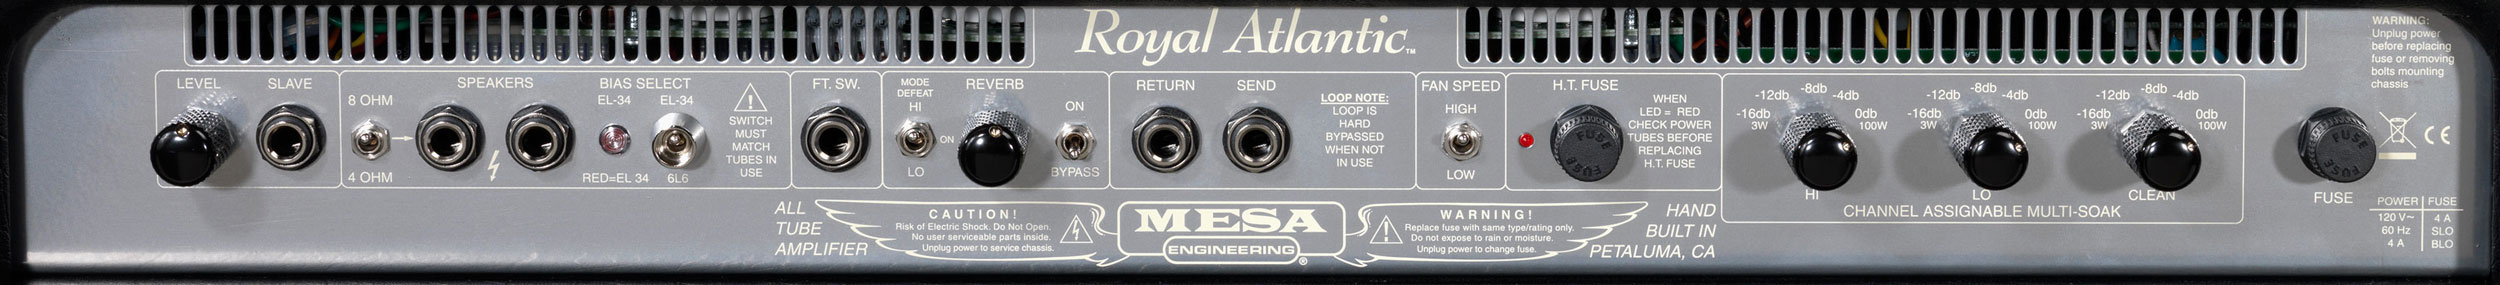 Royal Atlantic RA-100 Rear Panel